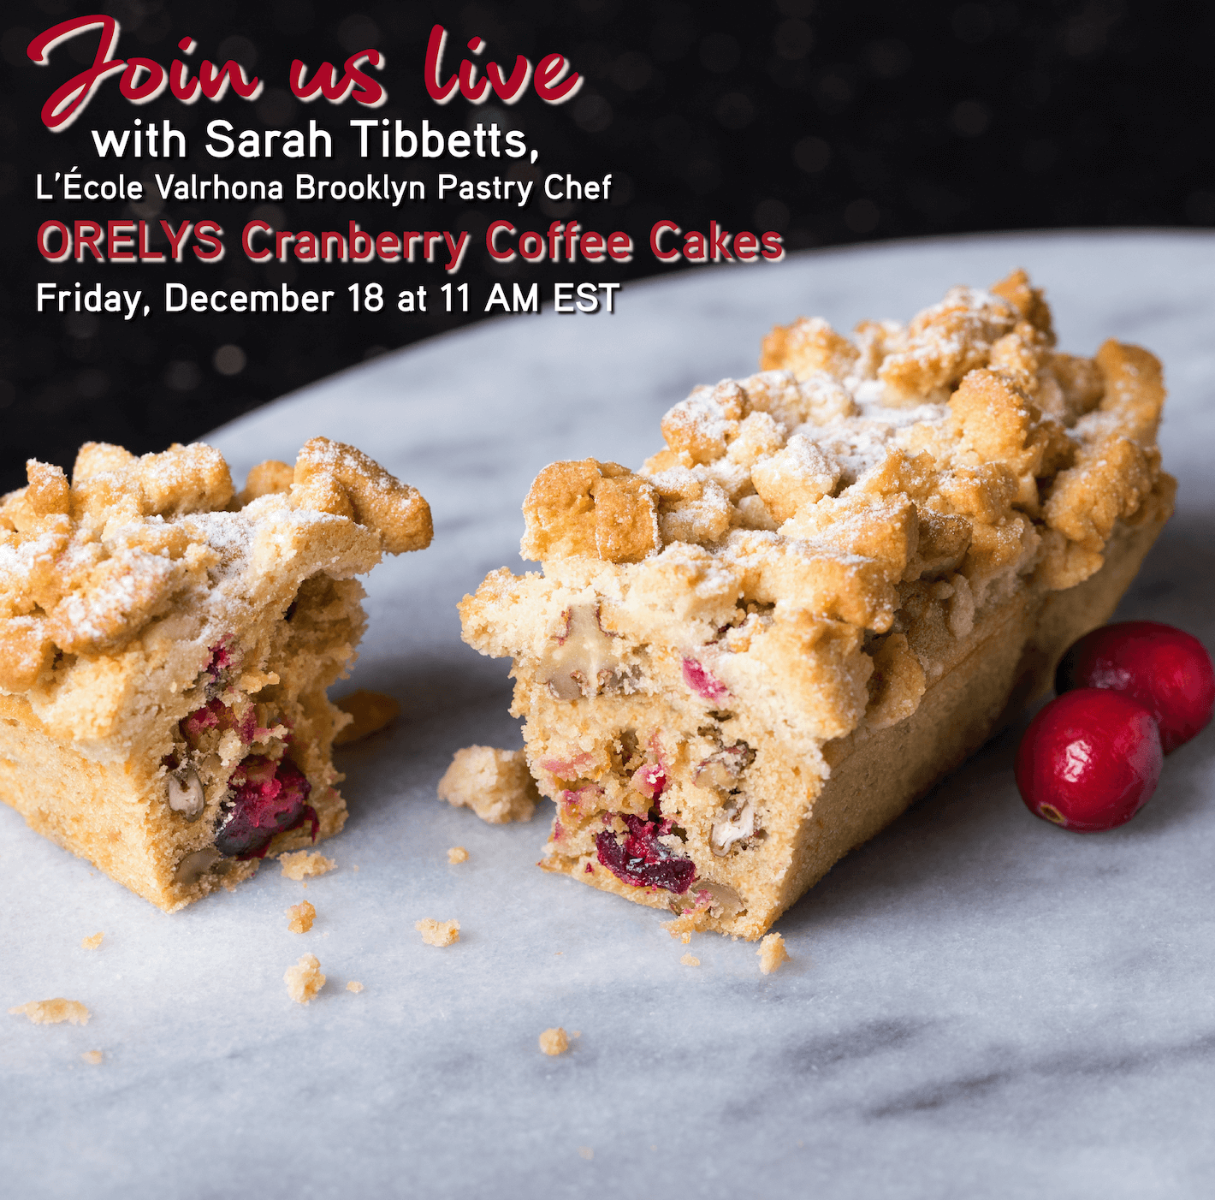 Announcing IG Live with Sarah: ORELYS Cranberry Coffee Cakes